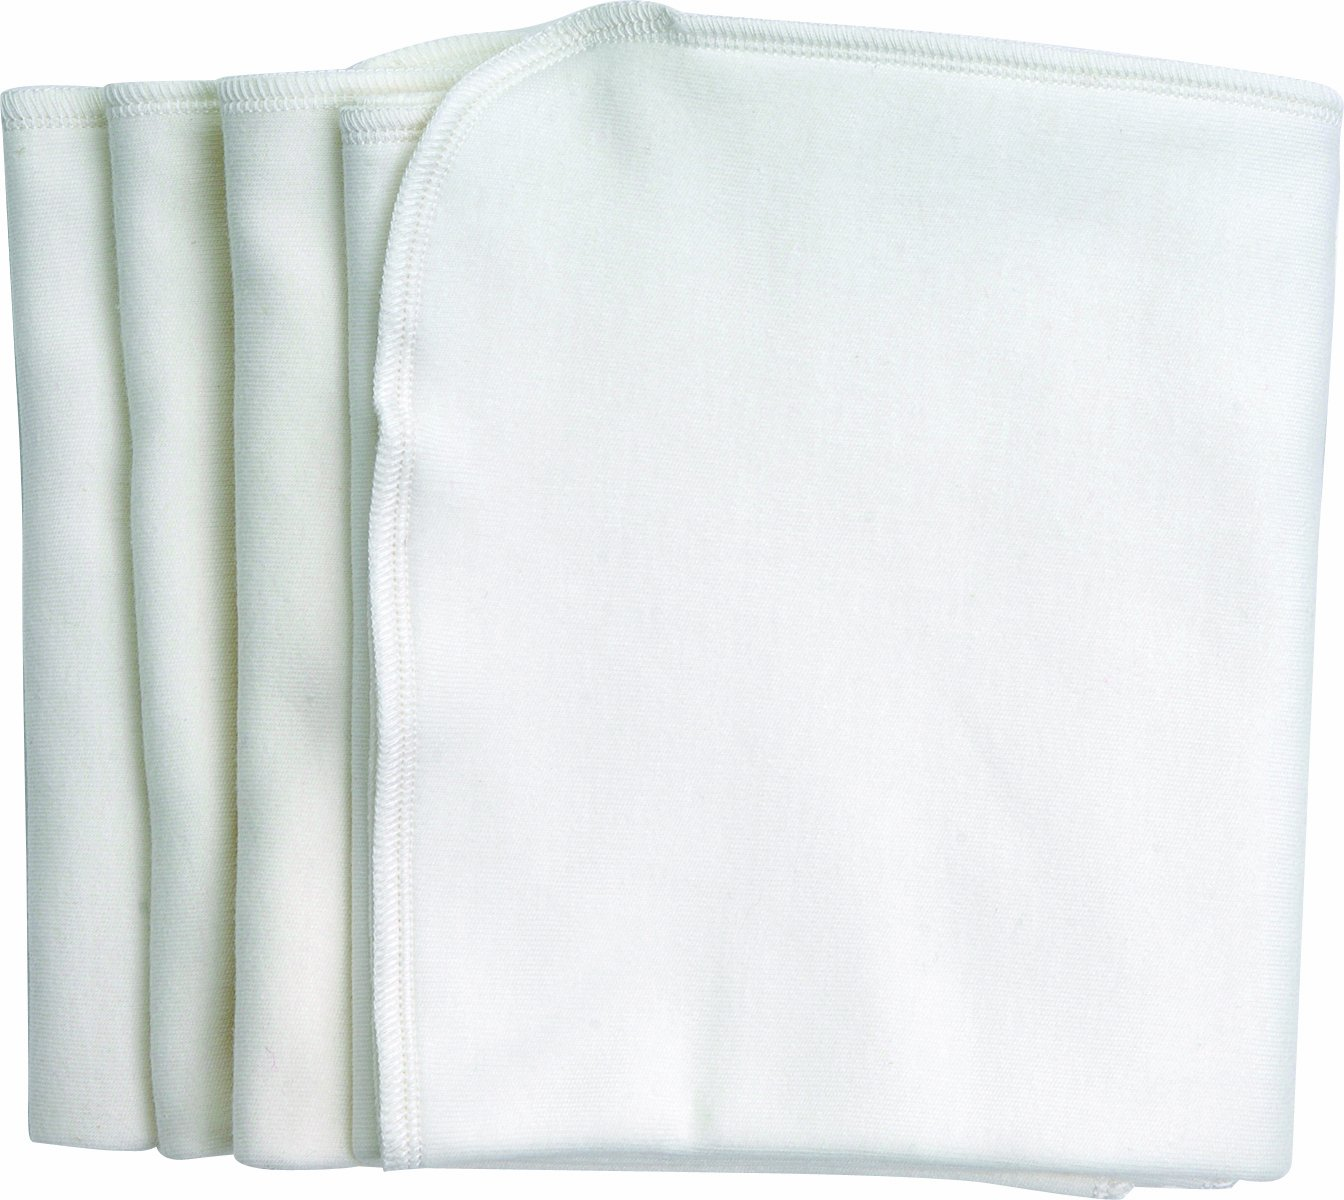 Under the Nile Burp Cloths, White, 4-Count by Under the Nile